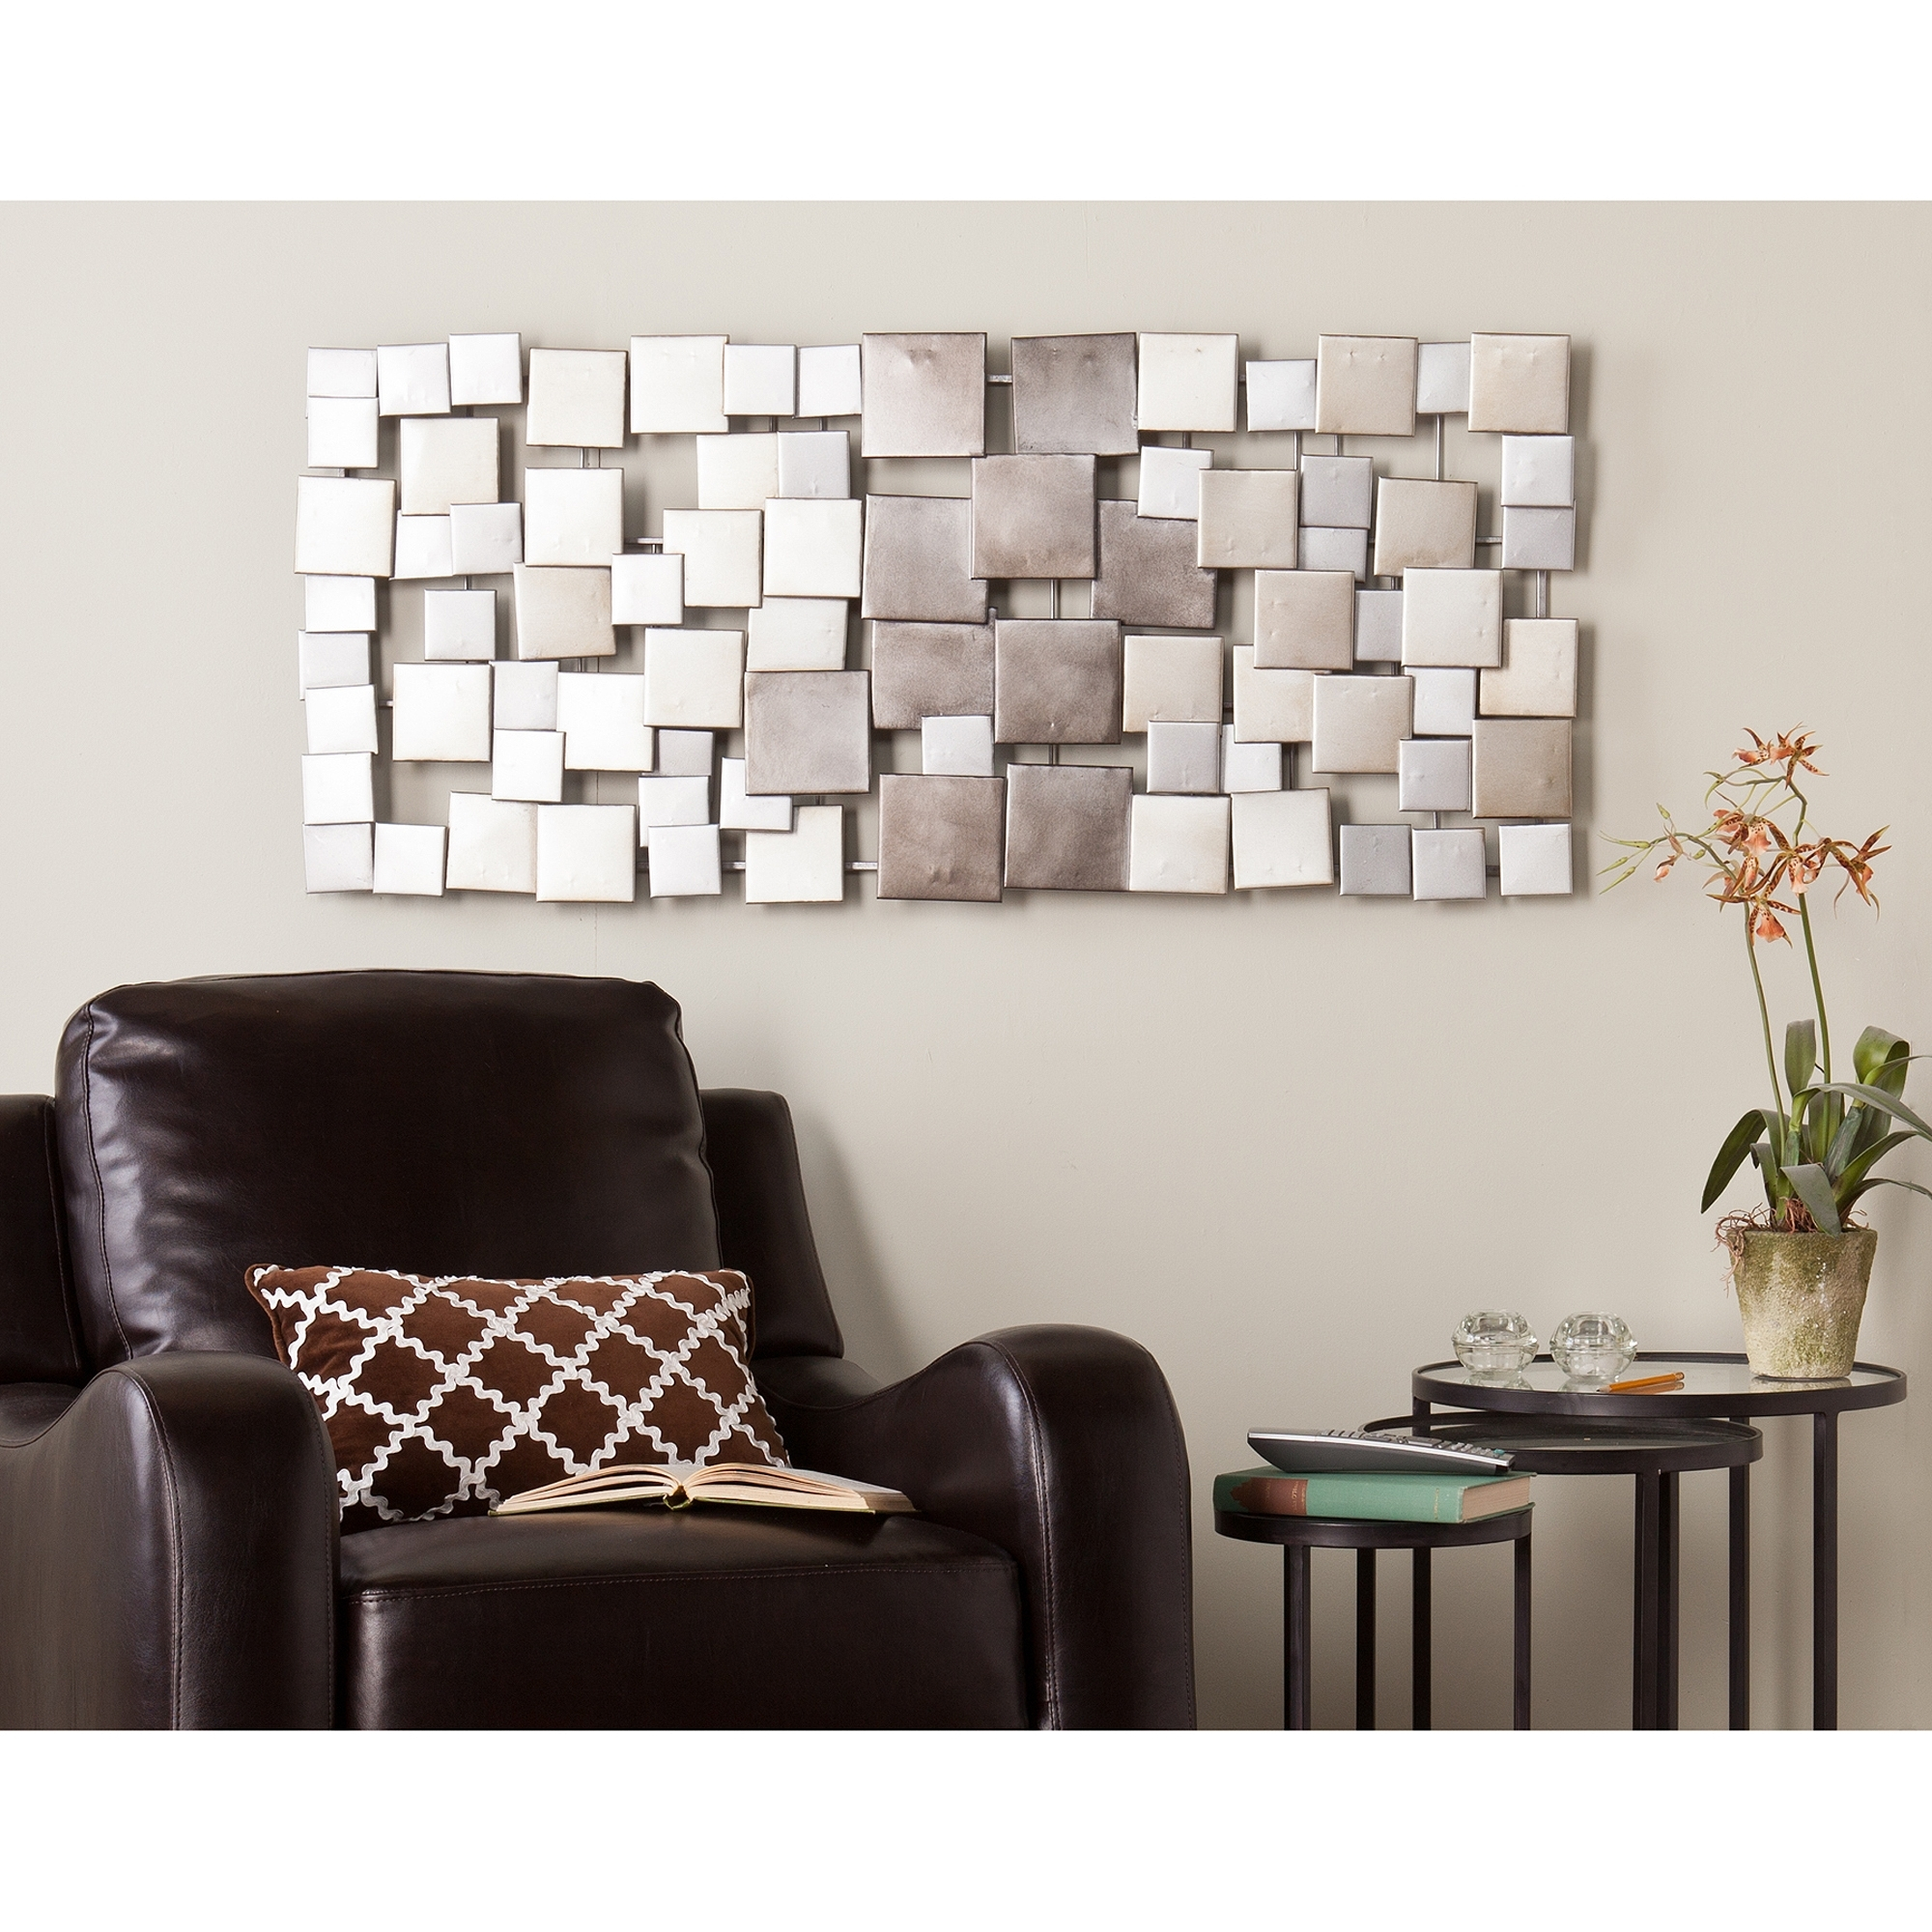 Metal Wall Art – Walmart For Most Popular Canvas Wall Art At Walmart (Gallery 10 of 15)